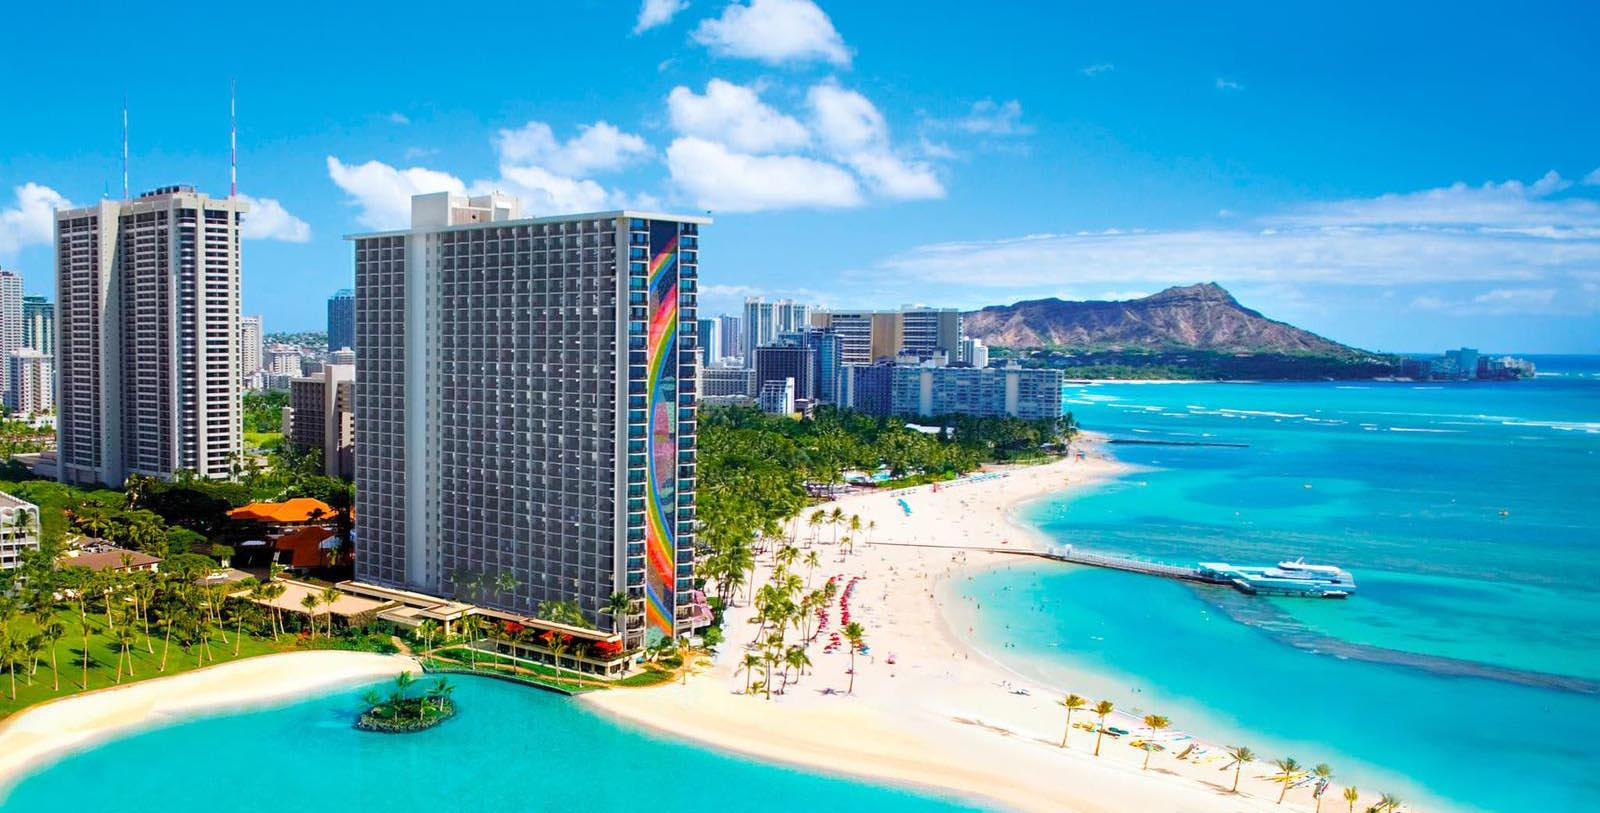 Image of hotel exterior and surrounding area Hilton Hawaiian Village® Waikiki Beach Resort, 1957, Member of Historic Hotels of America, in Honolulu, Hawaii, Special Offers, Discounted Rates, Families, Romantic Escape, Honeymoons, Anniversaries, Reunions